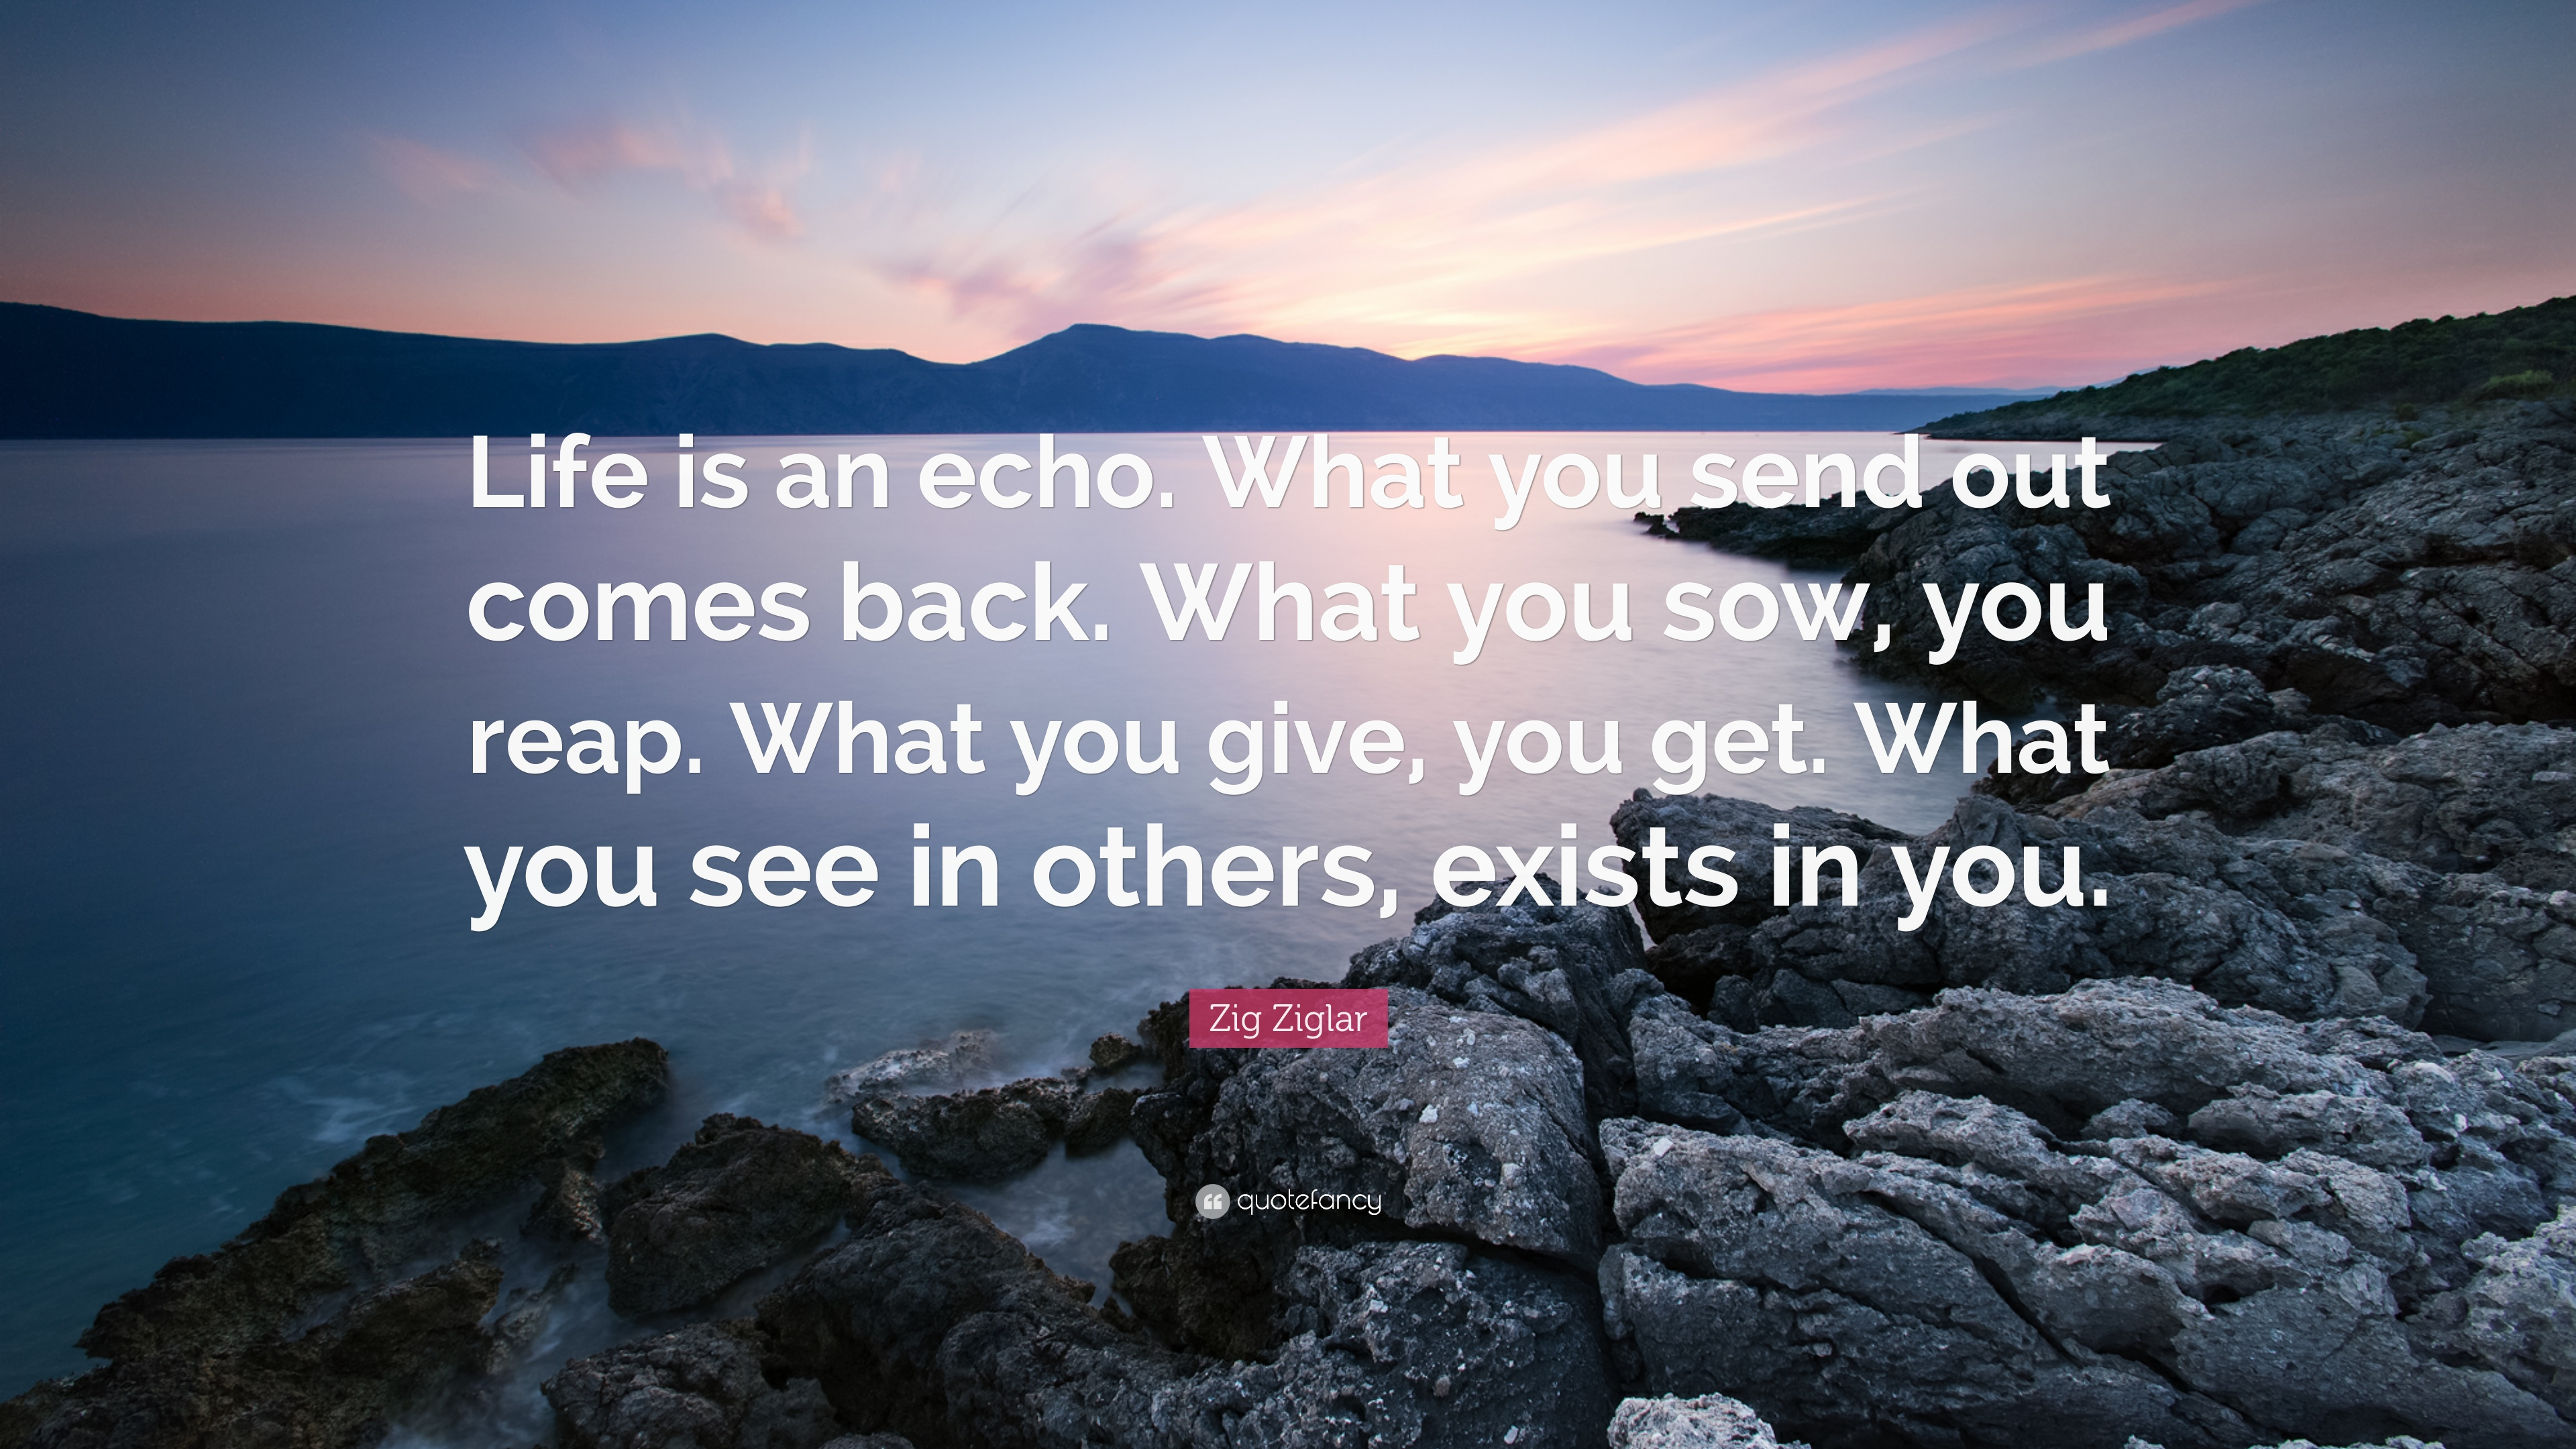 Attractive Zig Ziglar Quote: U201cLife Is An Echo. What You Send Out Comes Back